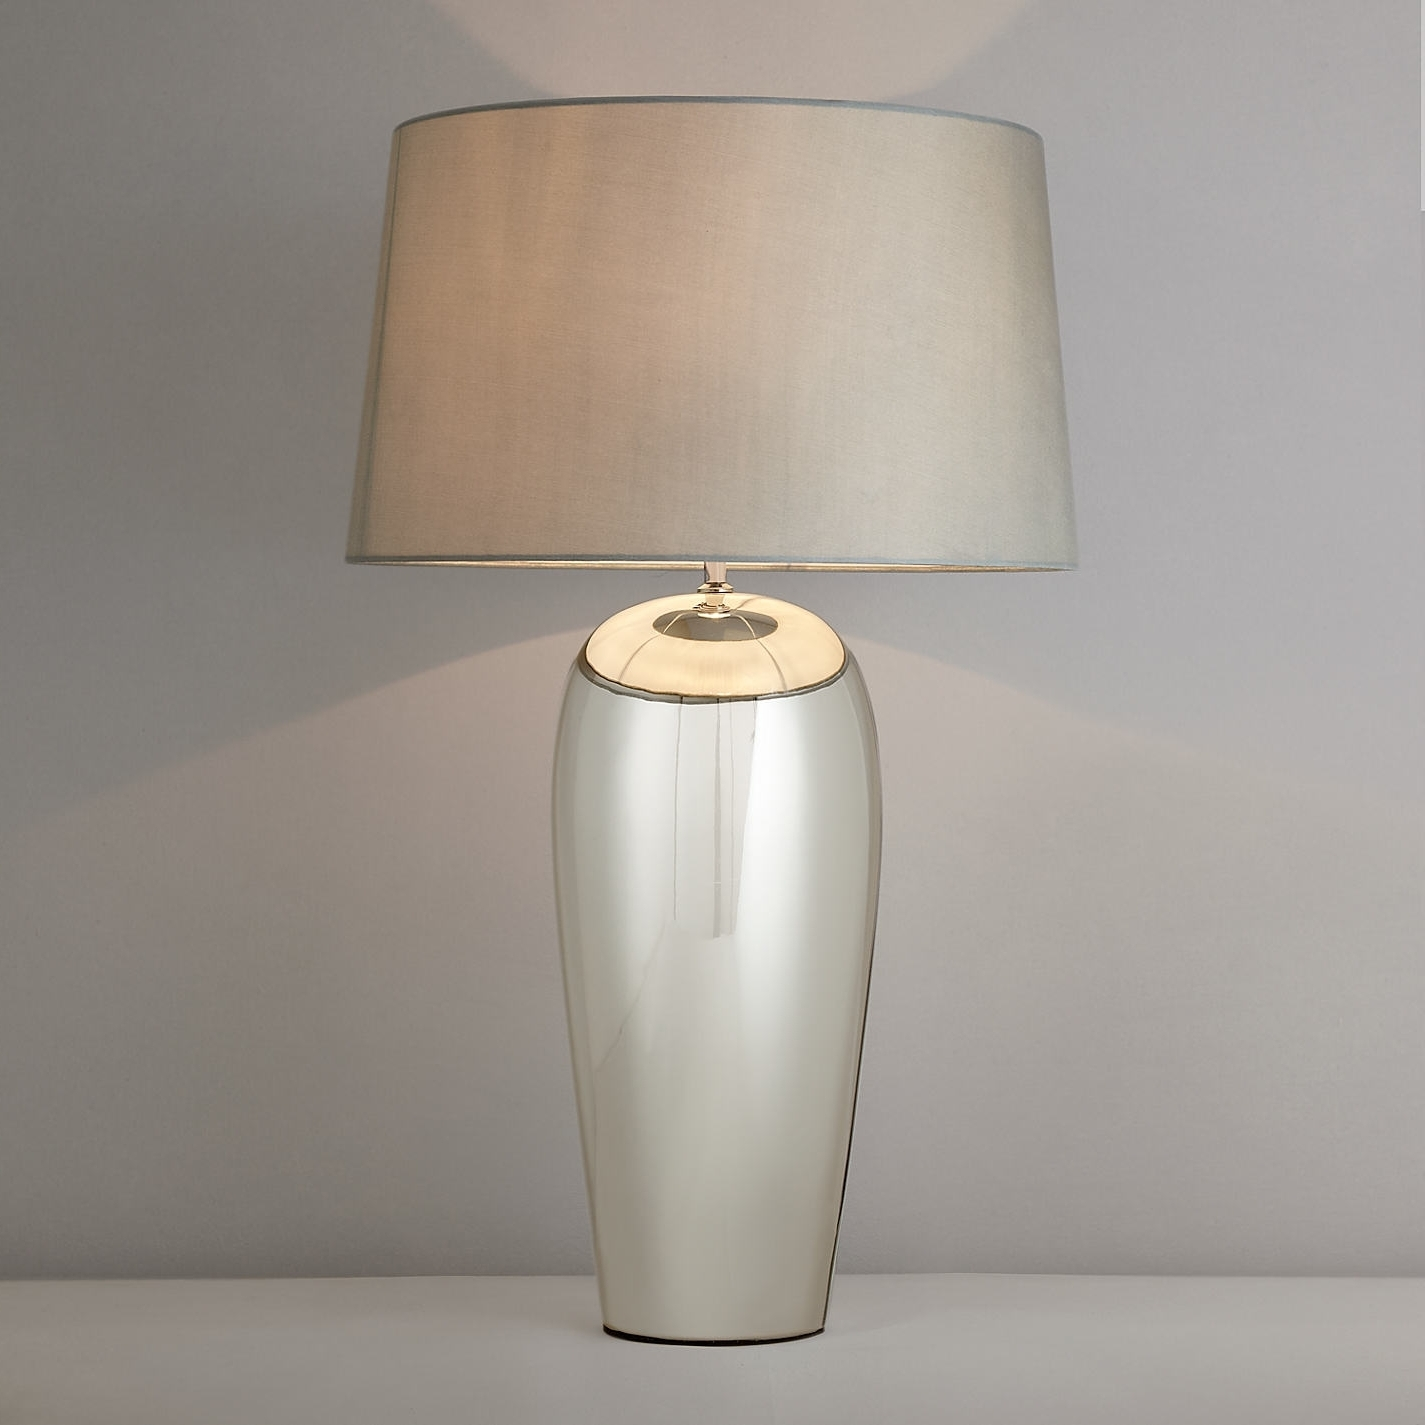 Most Popular John Lewis Living Room Table Lamps With Regard To Gallery John Lewis Table Lamps – Badotcom (View 18 of 20)